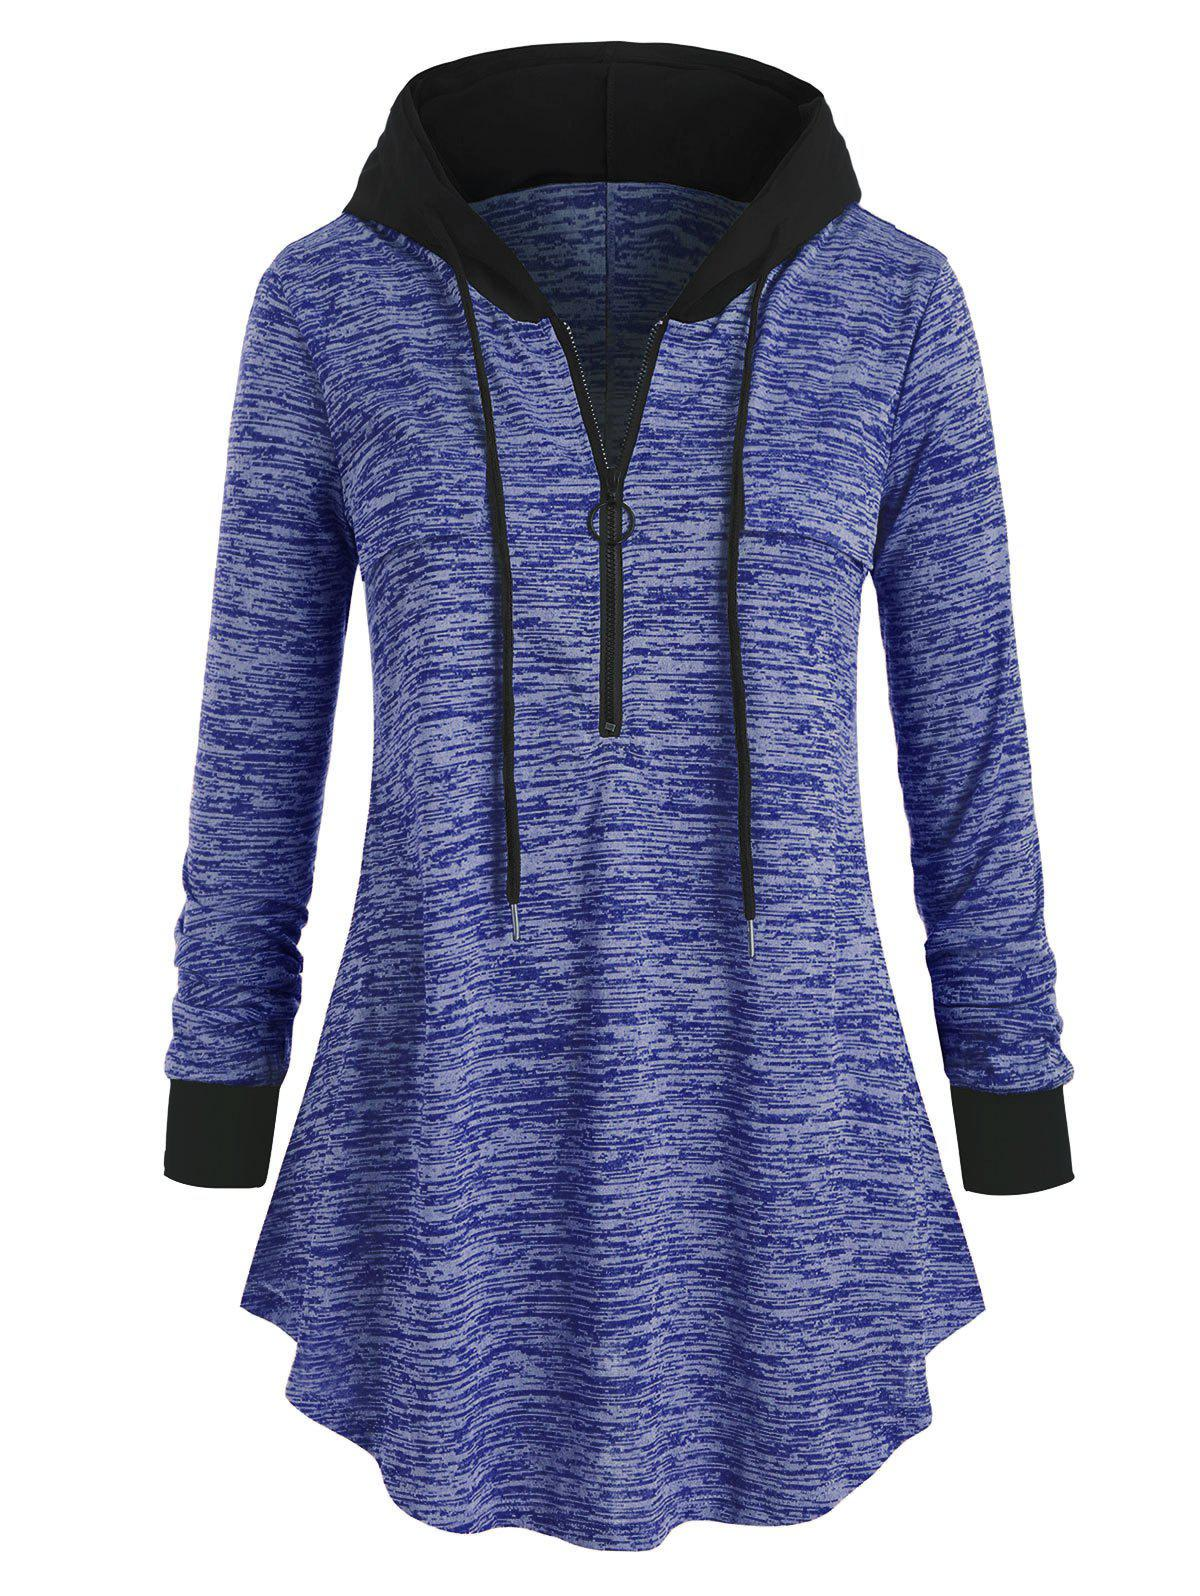 Space Dye Long Sleeve Plus Size Hooded Tunic Top - COBALT BLUE L